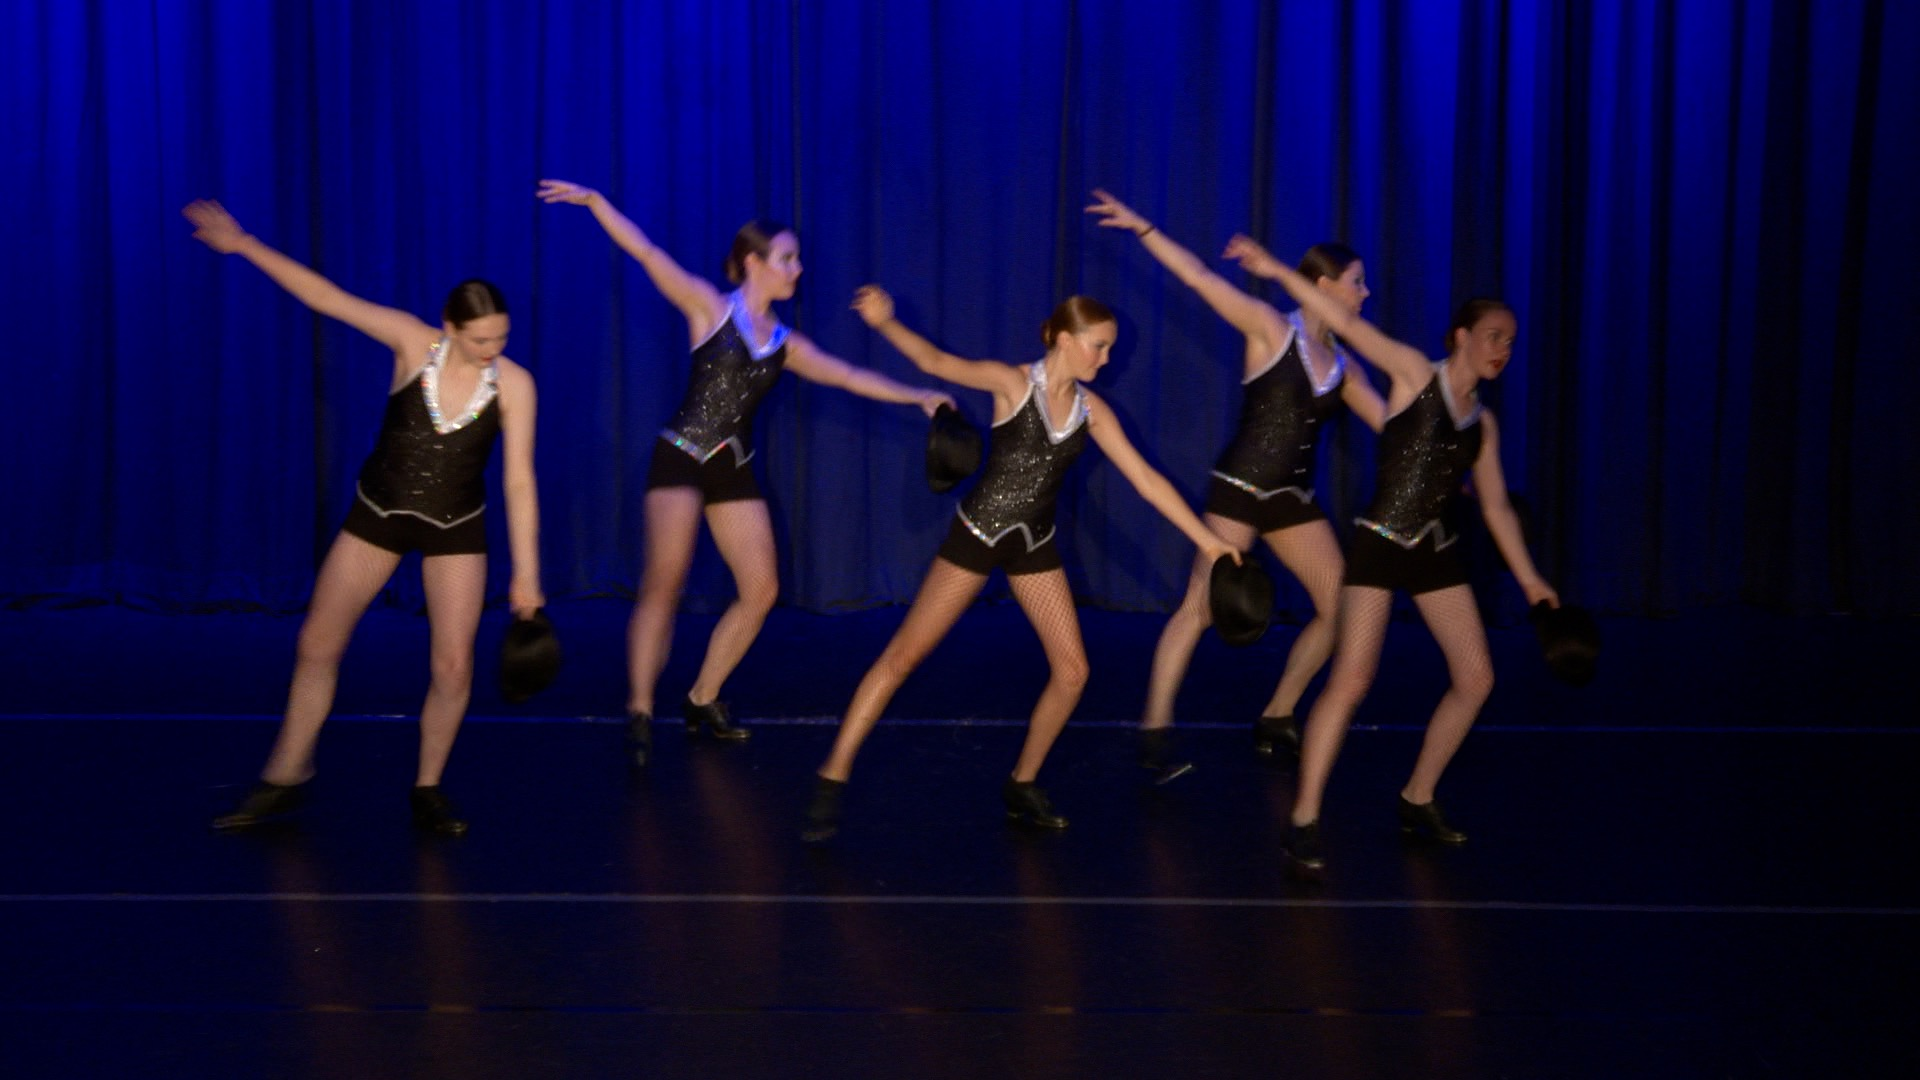 Focal Pointe Dance School